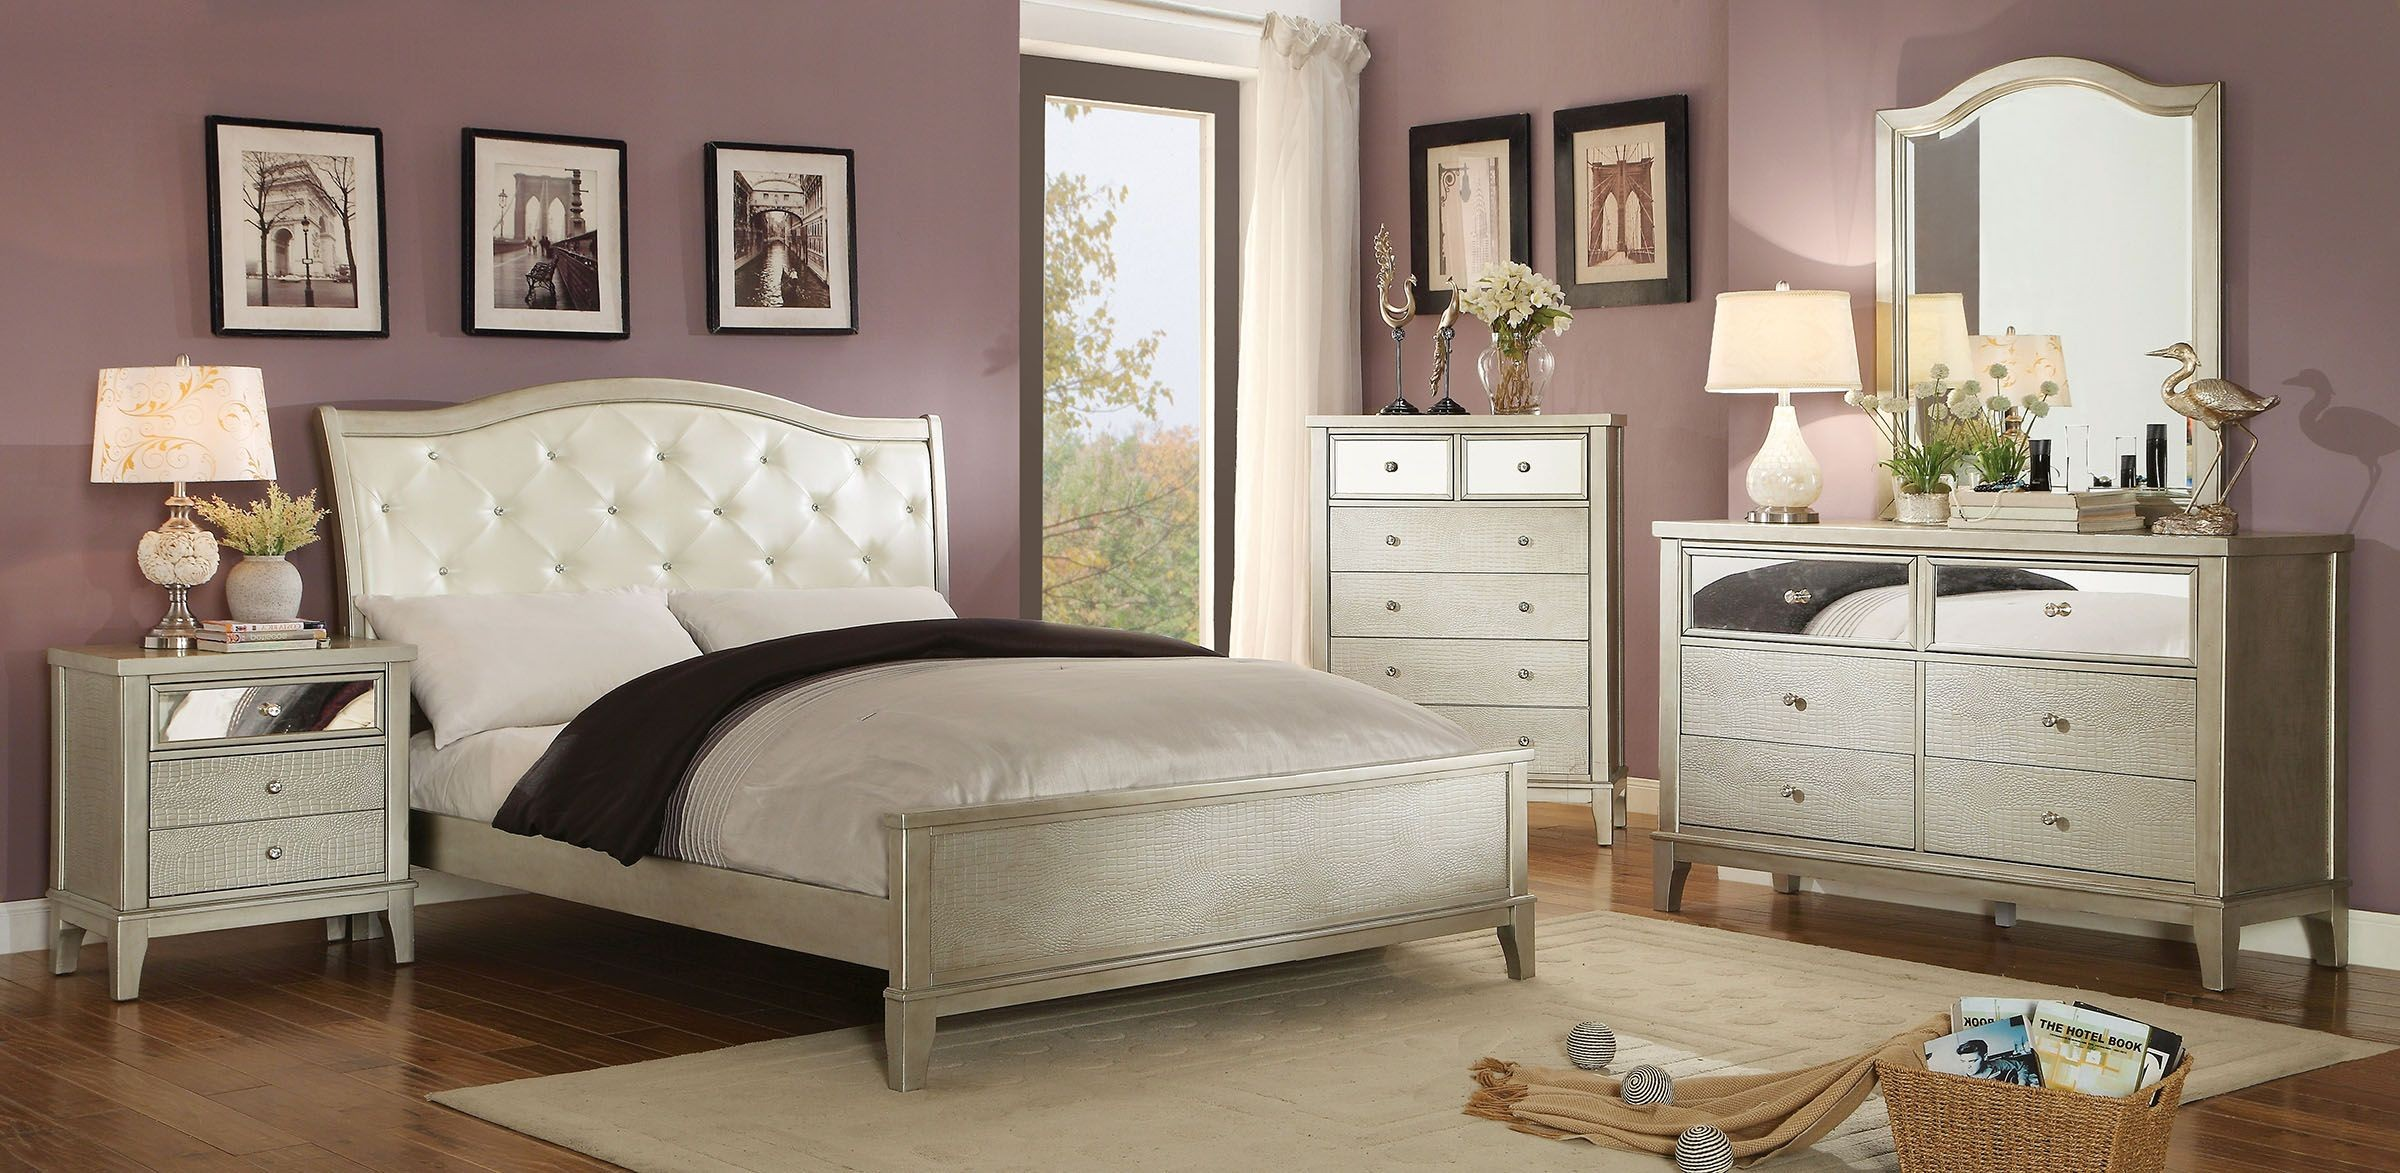 Adeline silver youth upholstered bedroom set from for Youth bedroom furniture